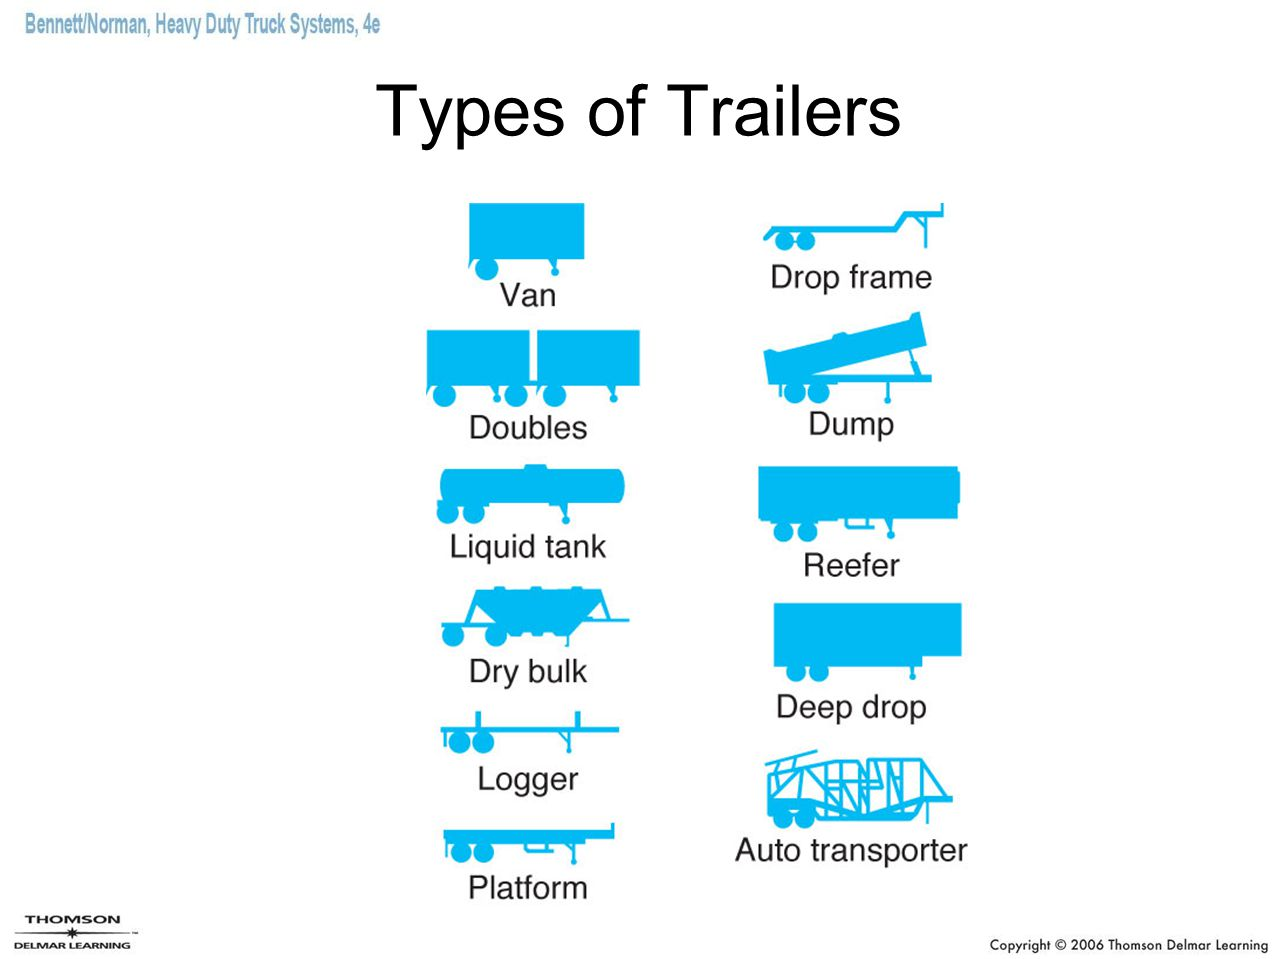 Types of Trailers